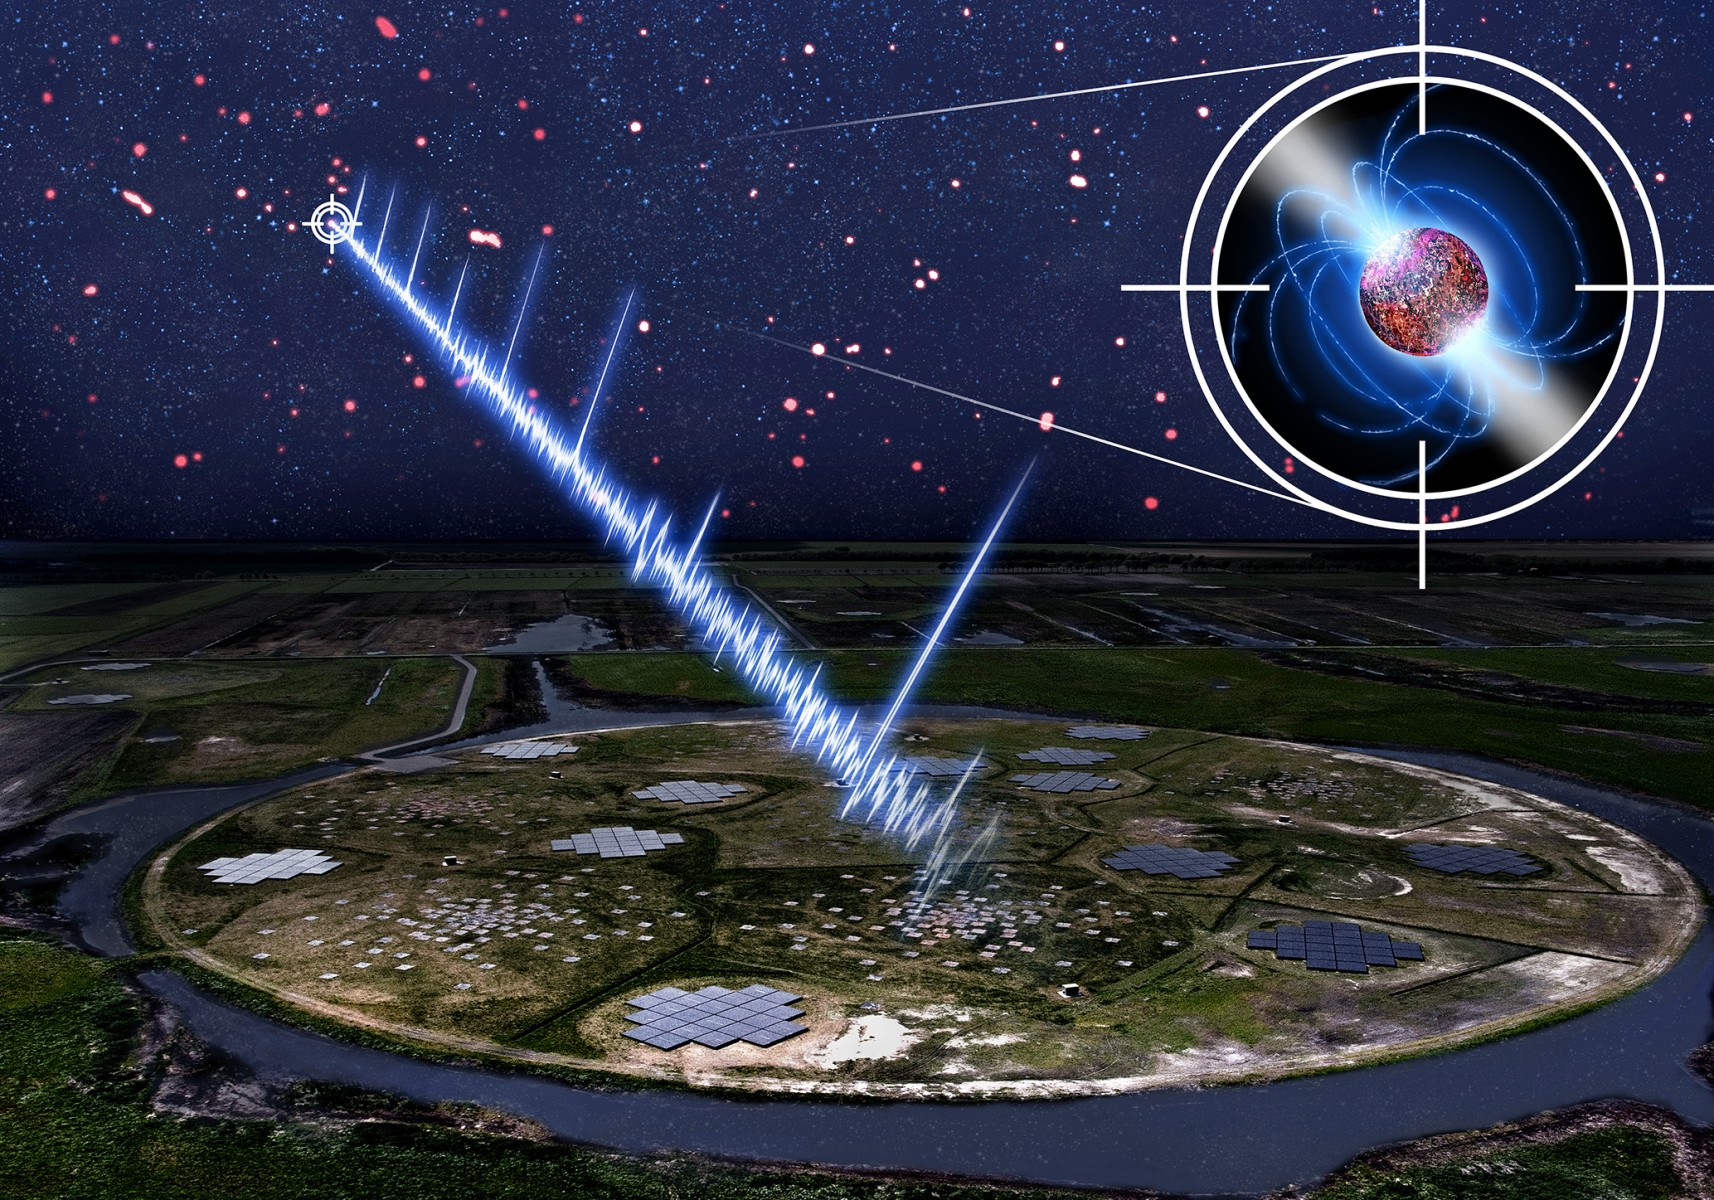 Artist's conception of the newly discovered 23.5-second pulsar